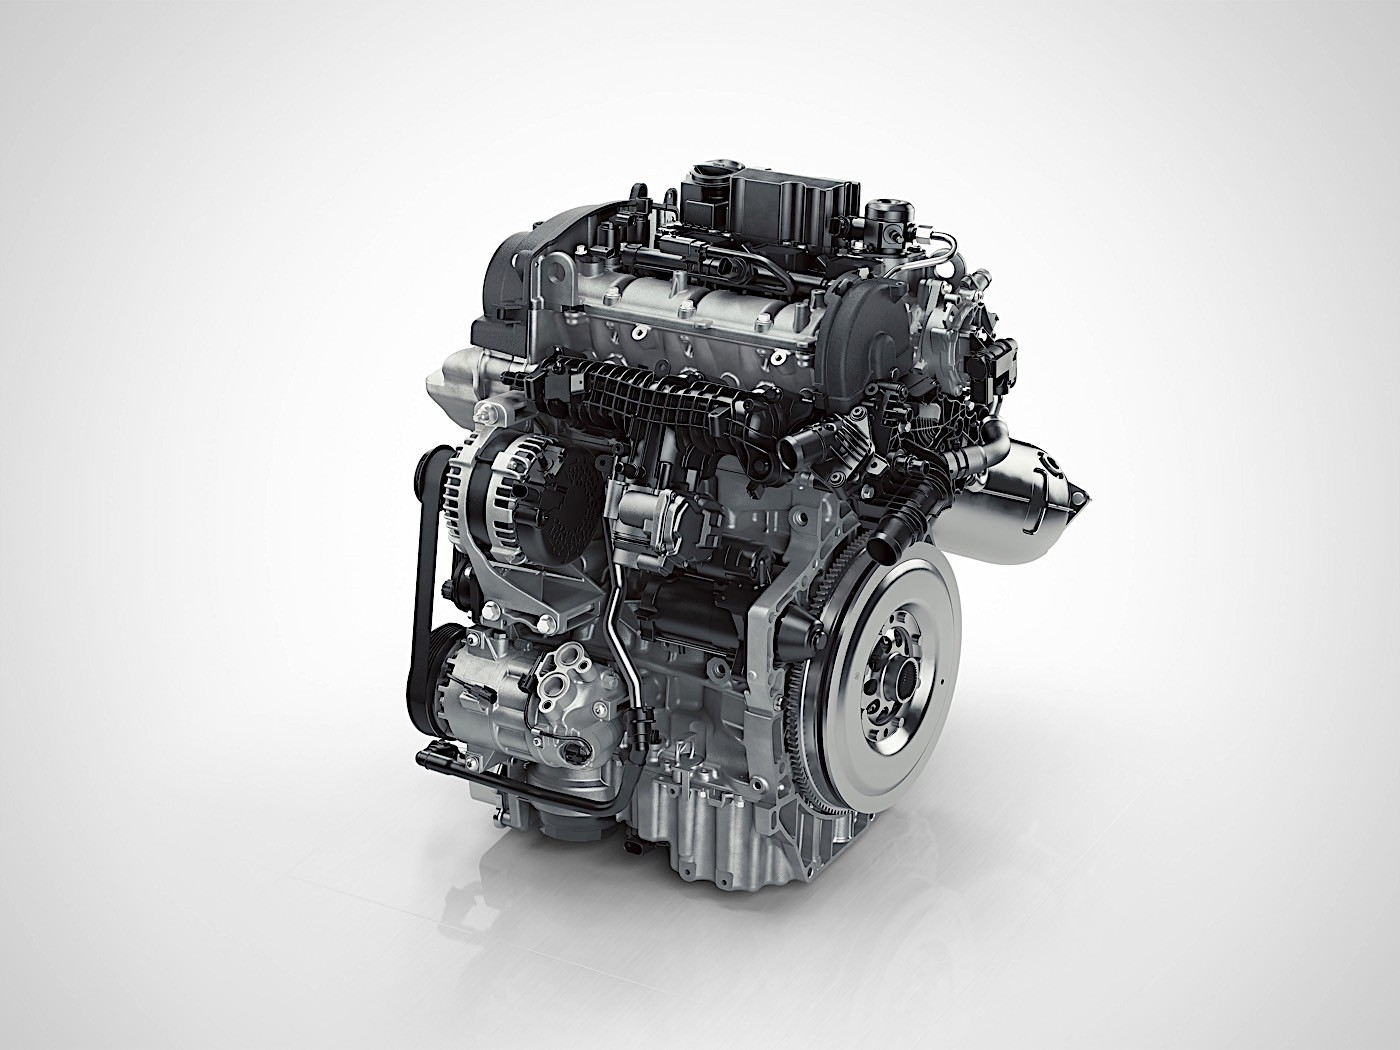 Volvo presented the first three-cylinder engine